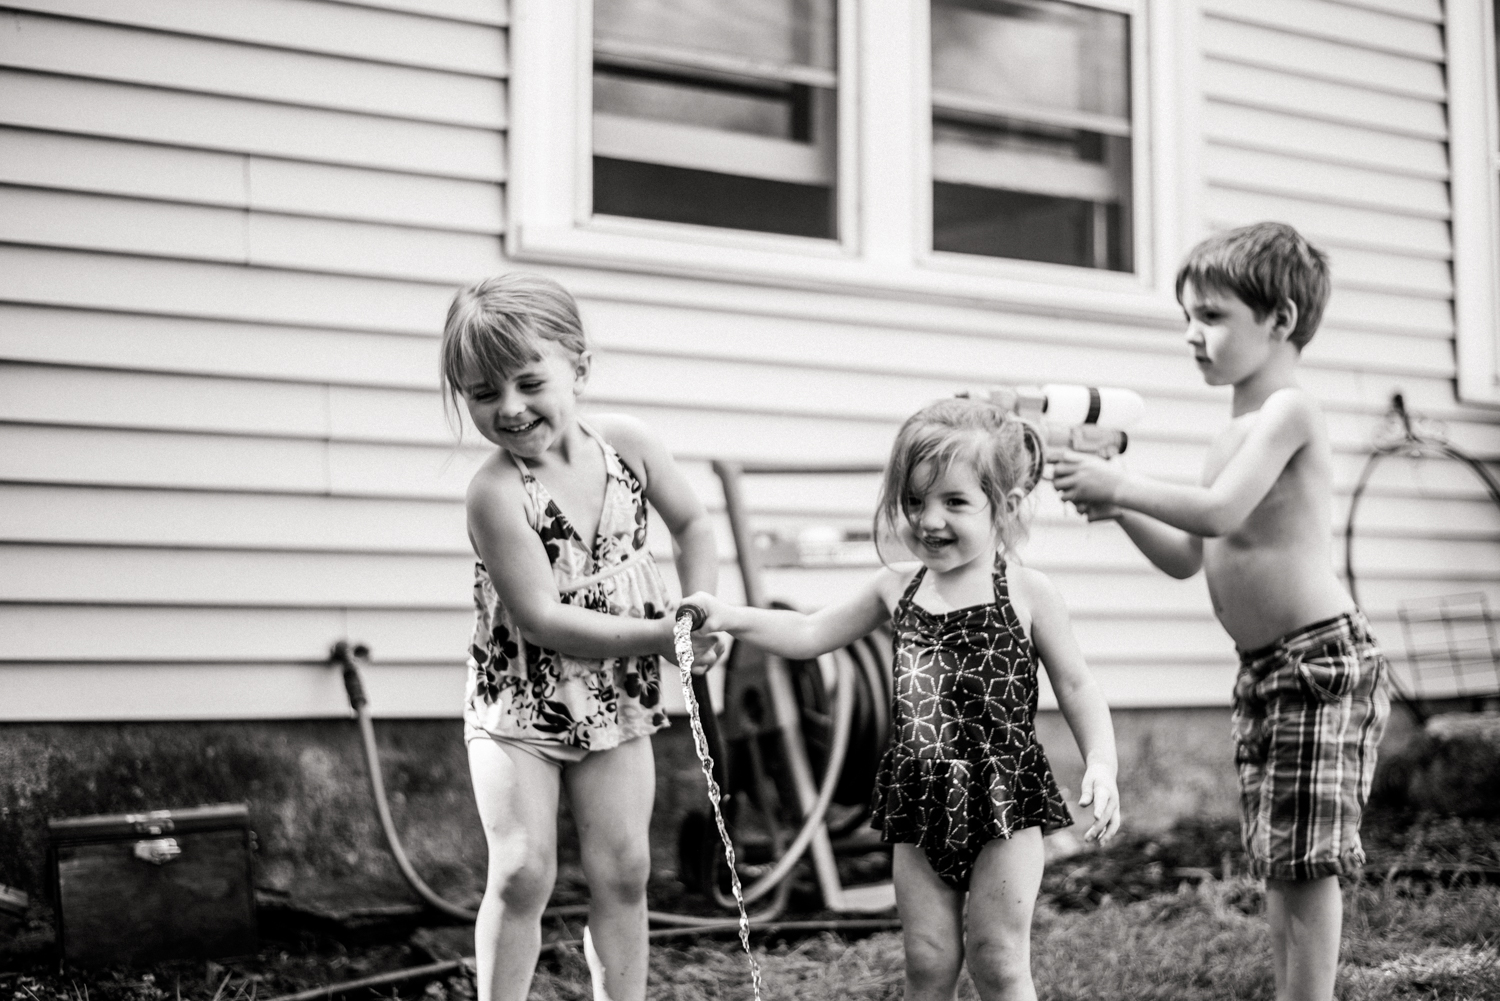 kids playing with the hose